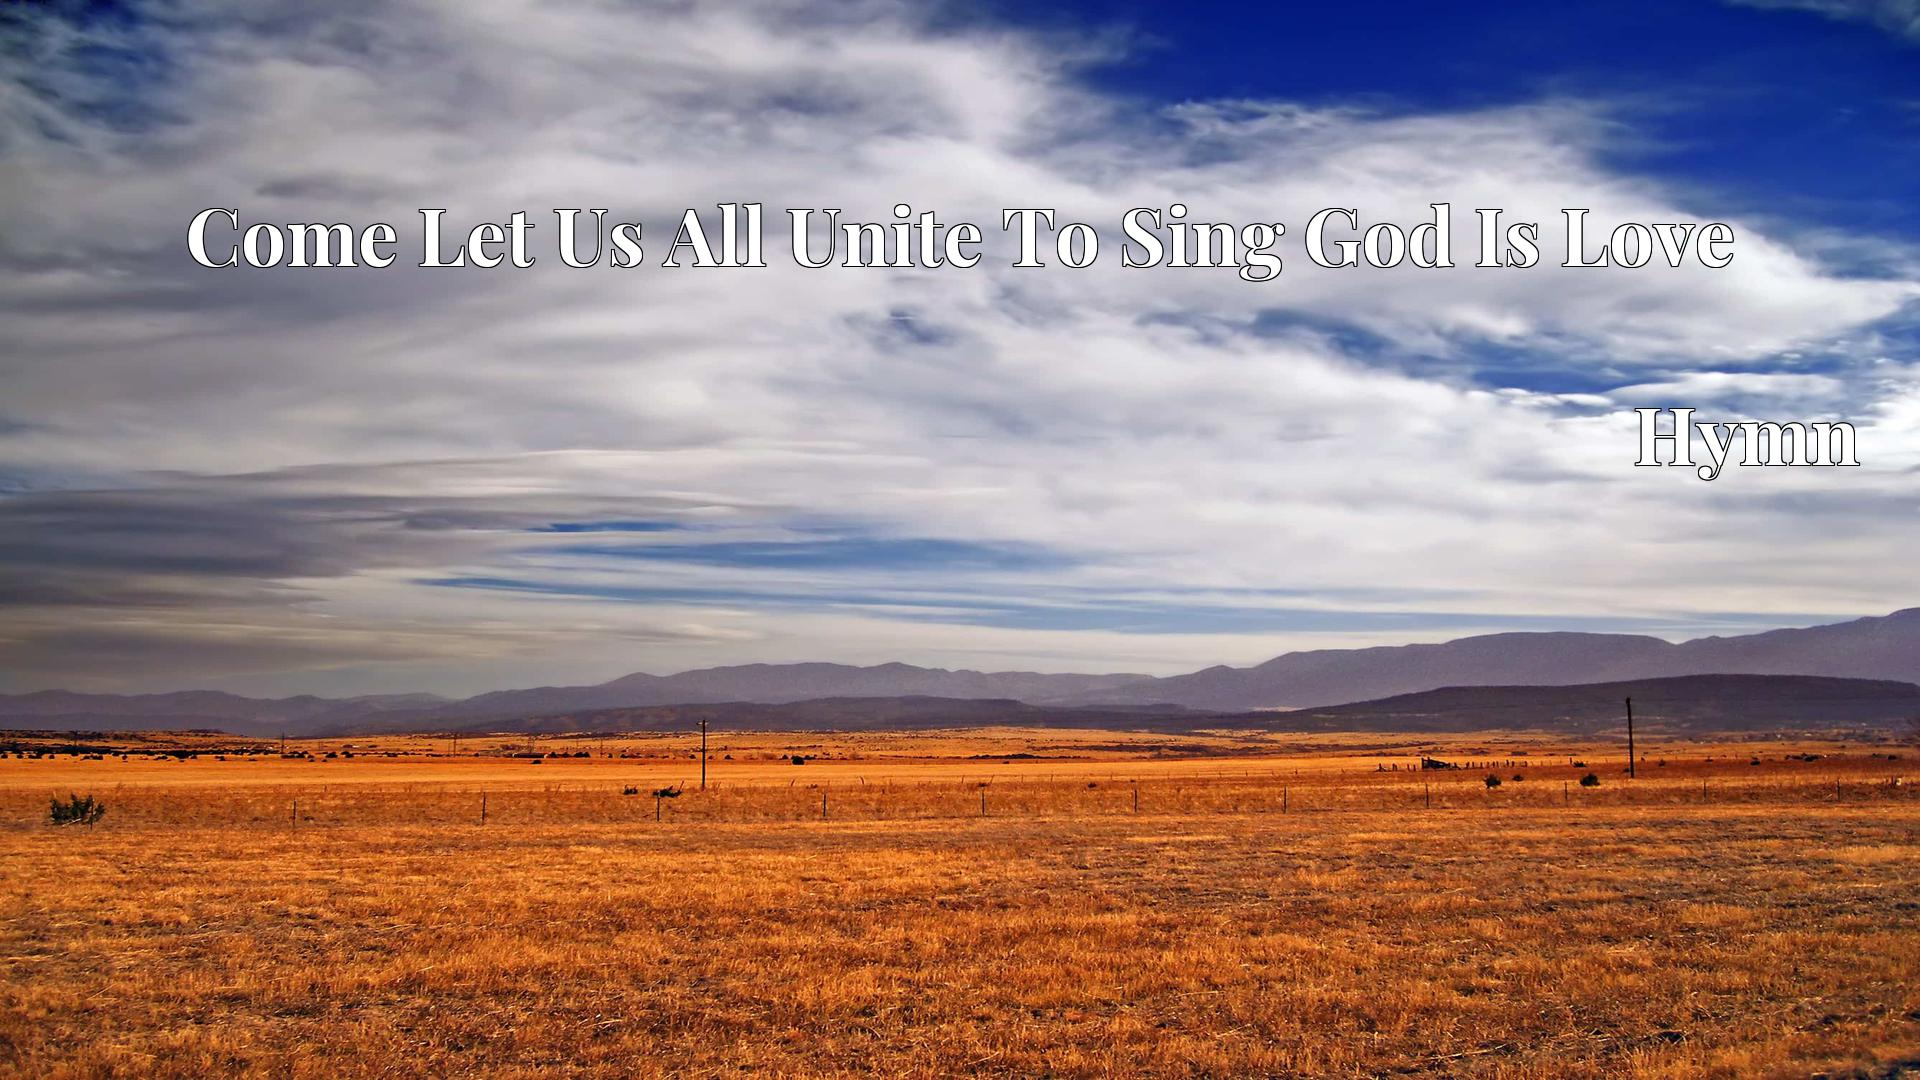 Come Let Us All Unite To Sing God Is Love - Hymn